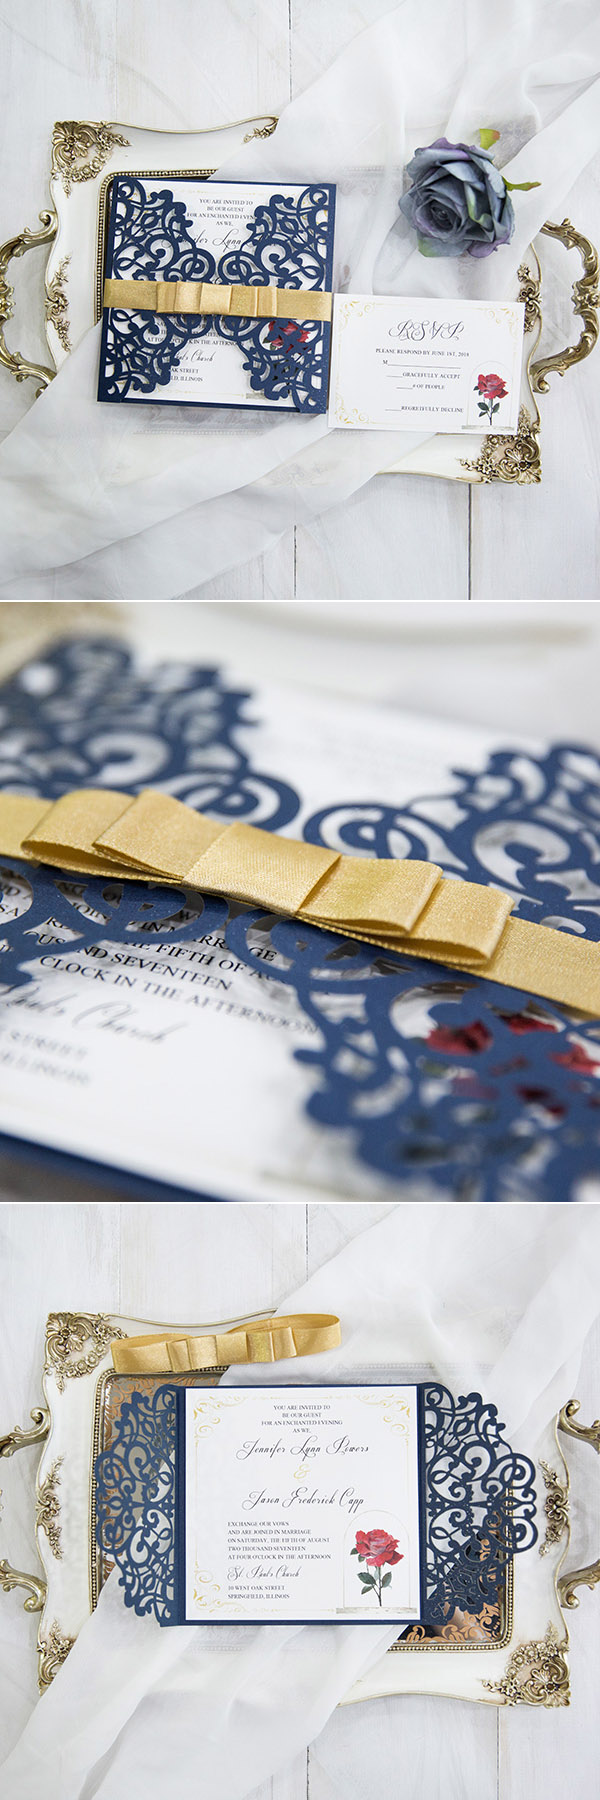 Navy Blue And Yellow Beauty And The Beast Inspired Laser Cut Wedding  Invitation Cards